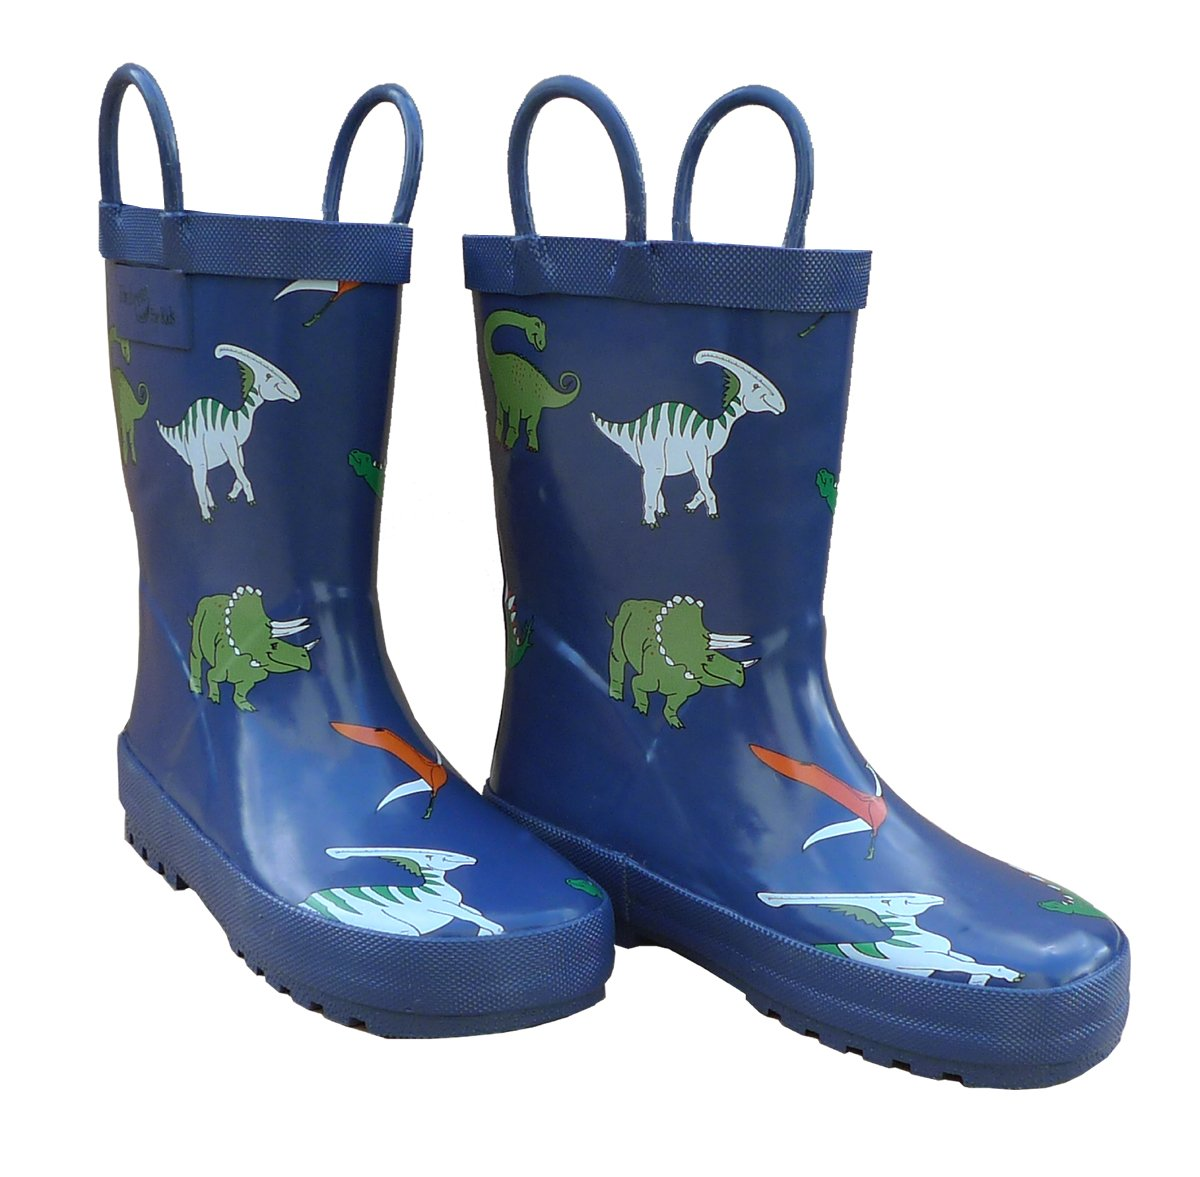 Foxfire For Kids Dark Blue with Dinosaurs Rubber Boots Size 1